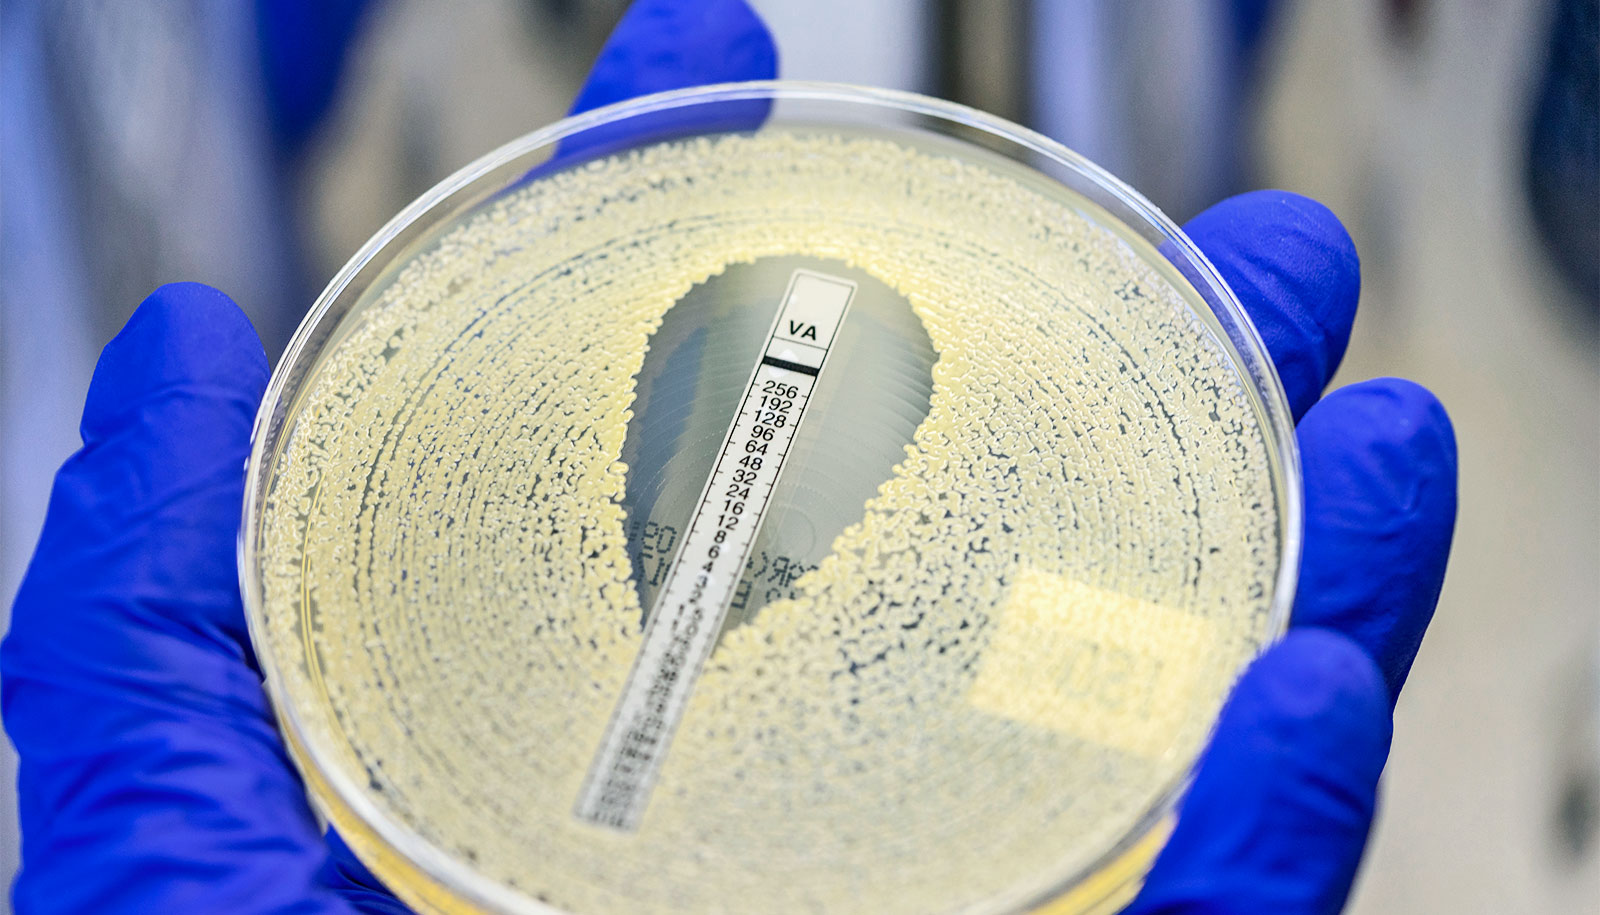 Some people have better genetic protection from MRSA